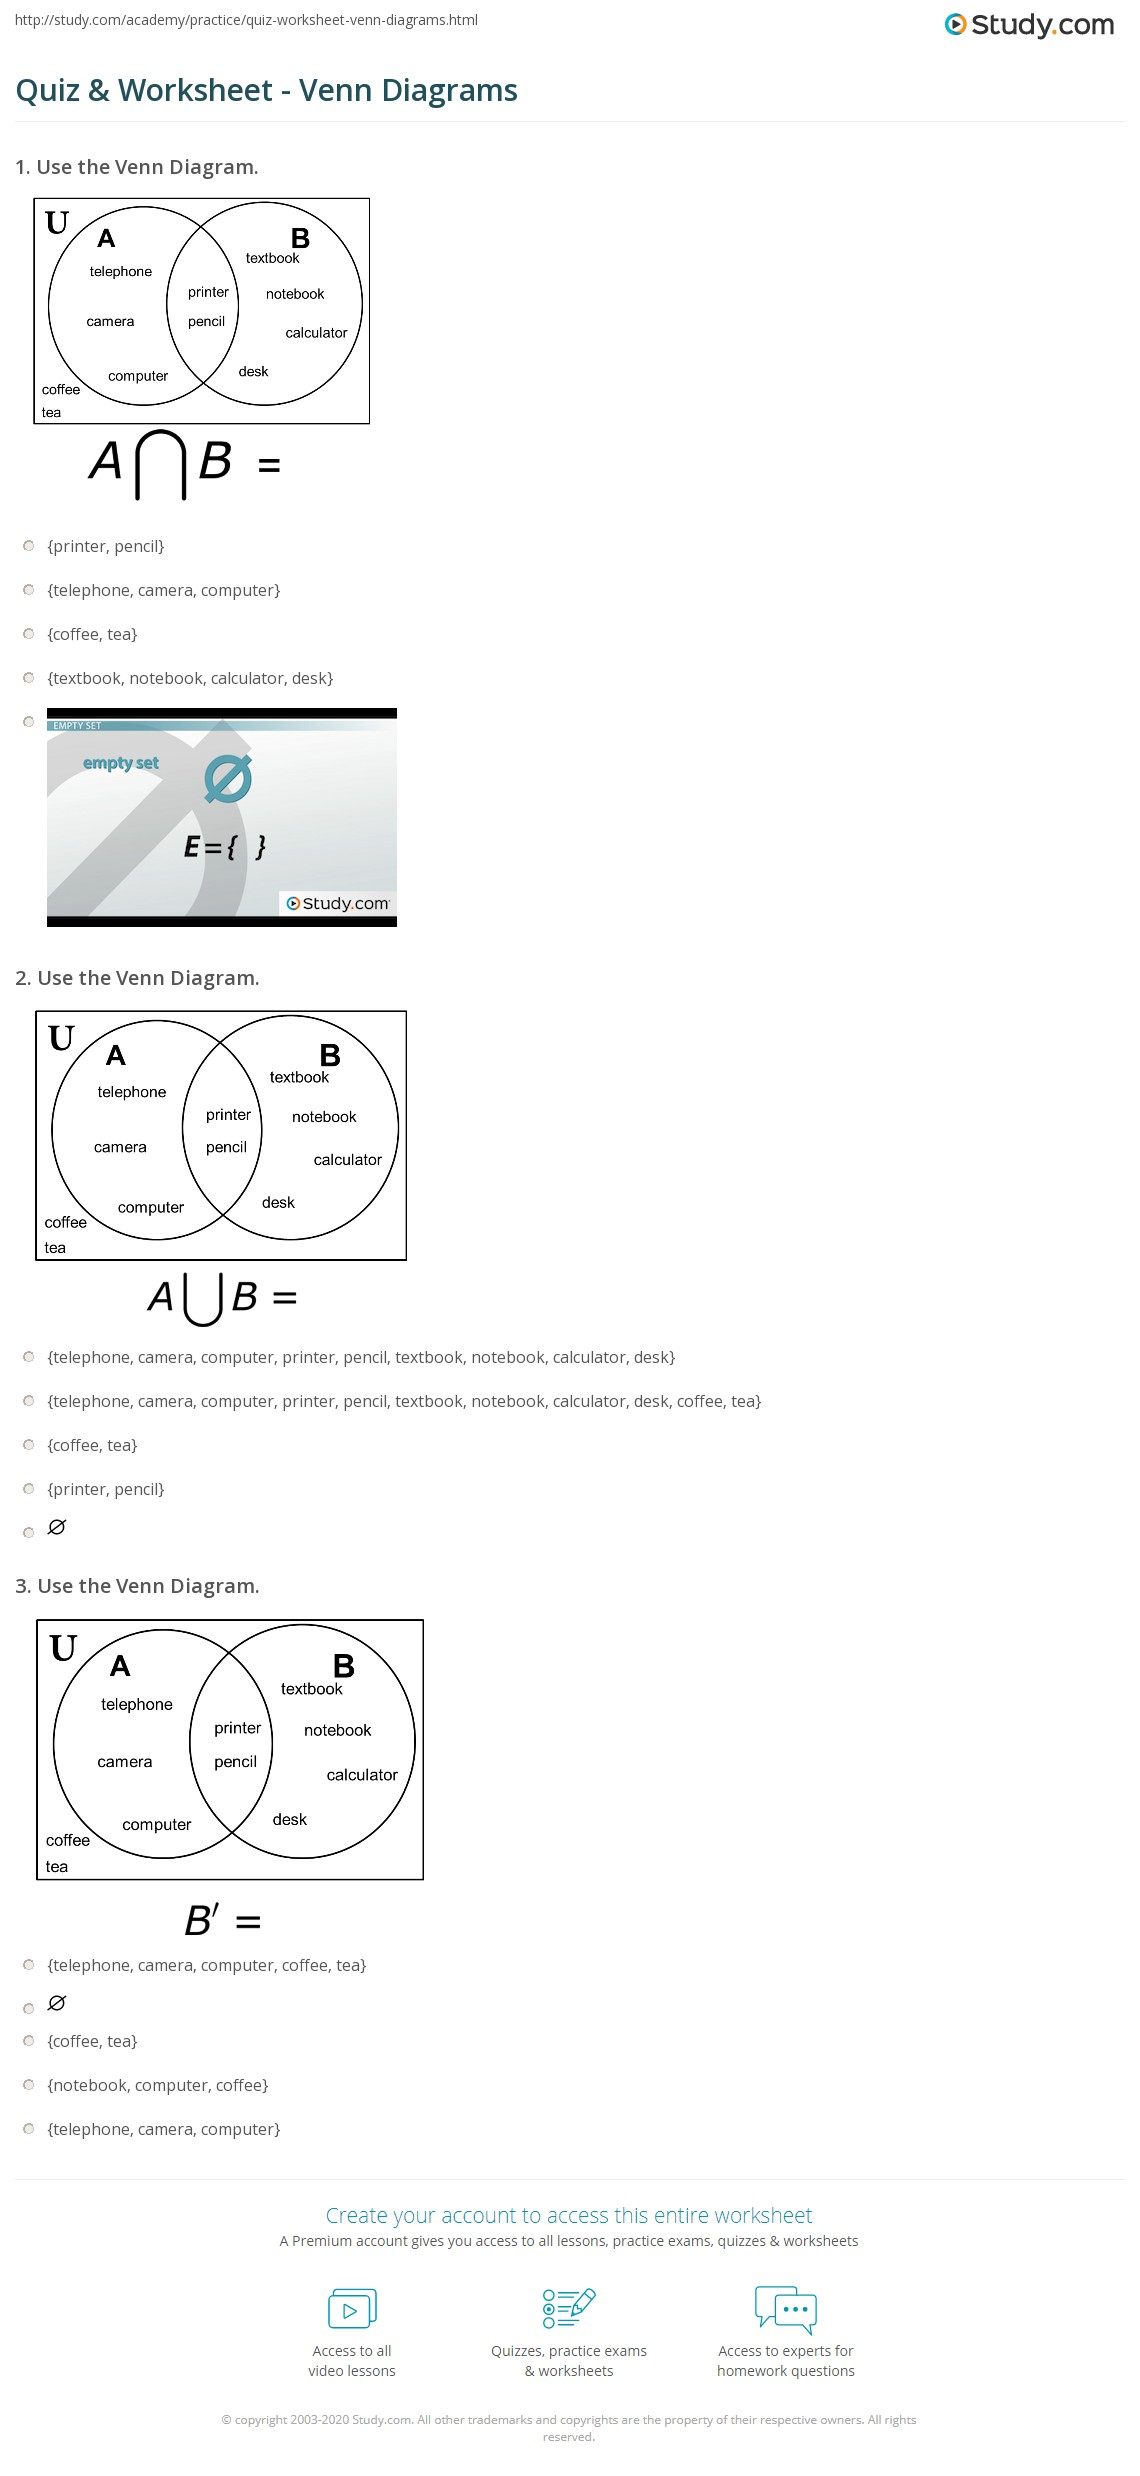 Quiz Worksheet Venn Diagrams Study Com